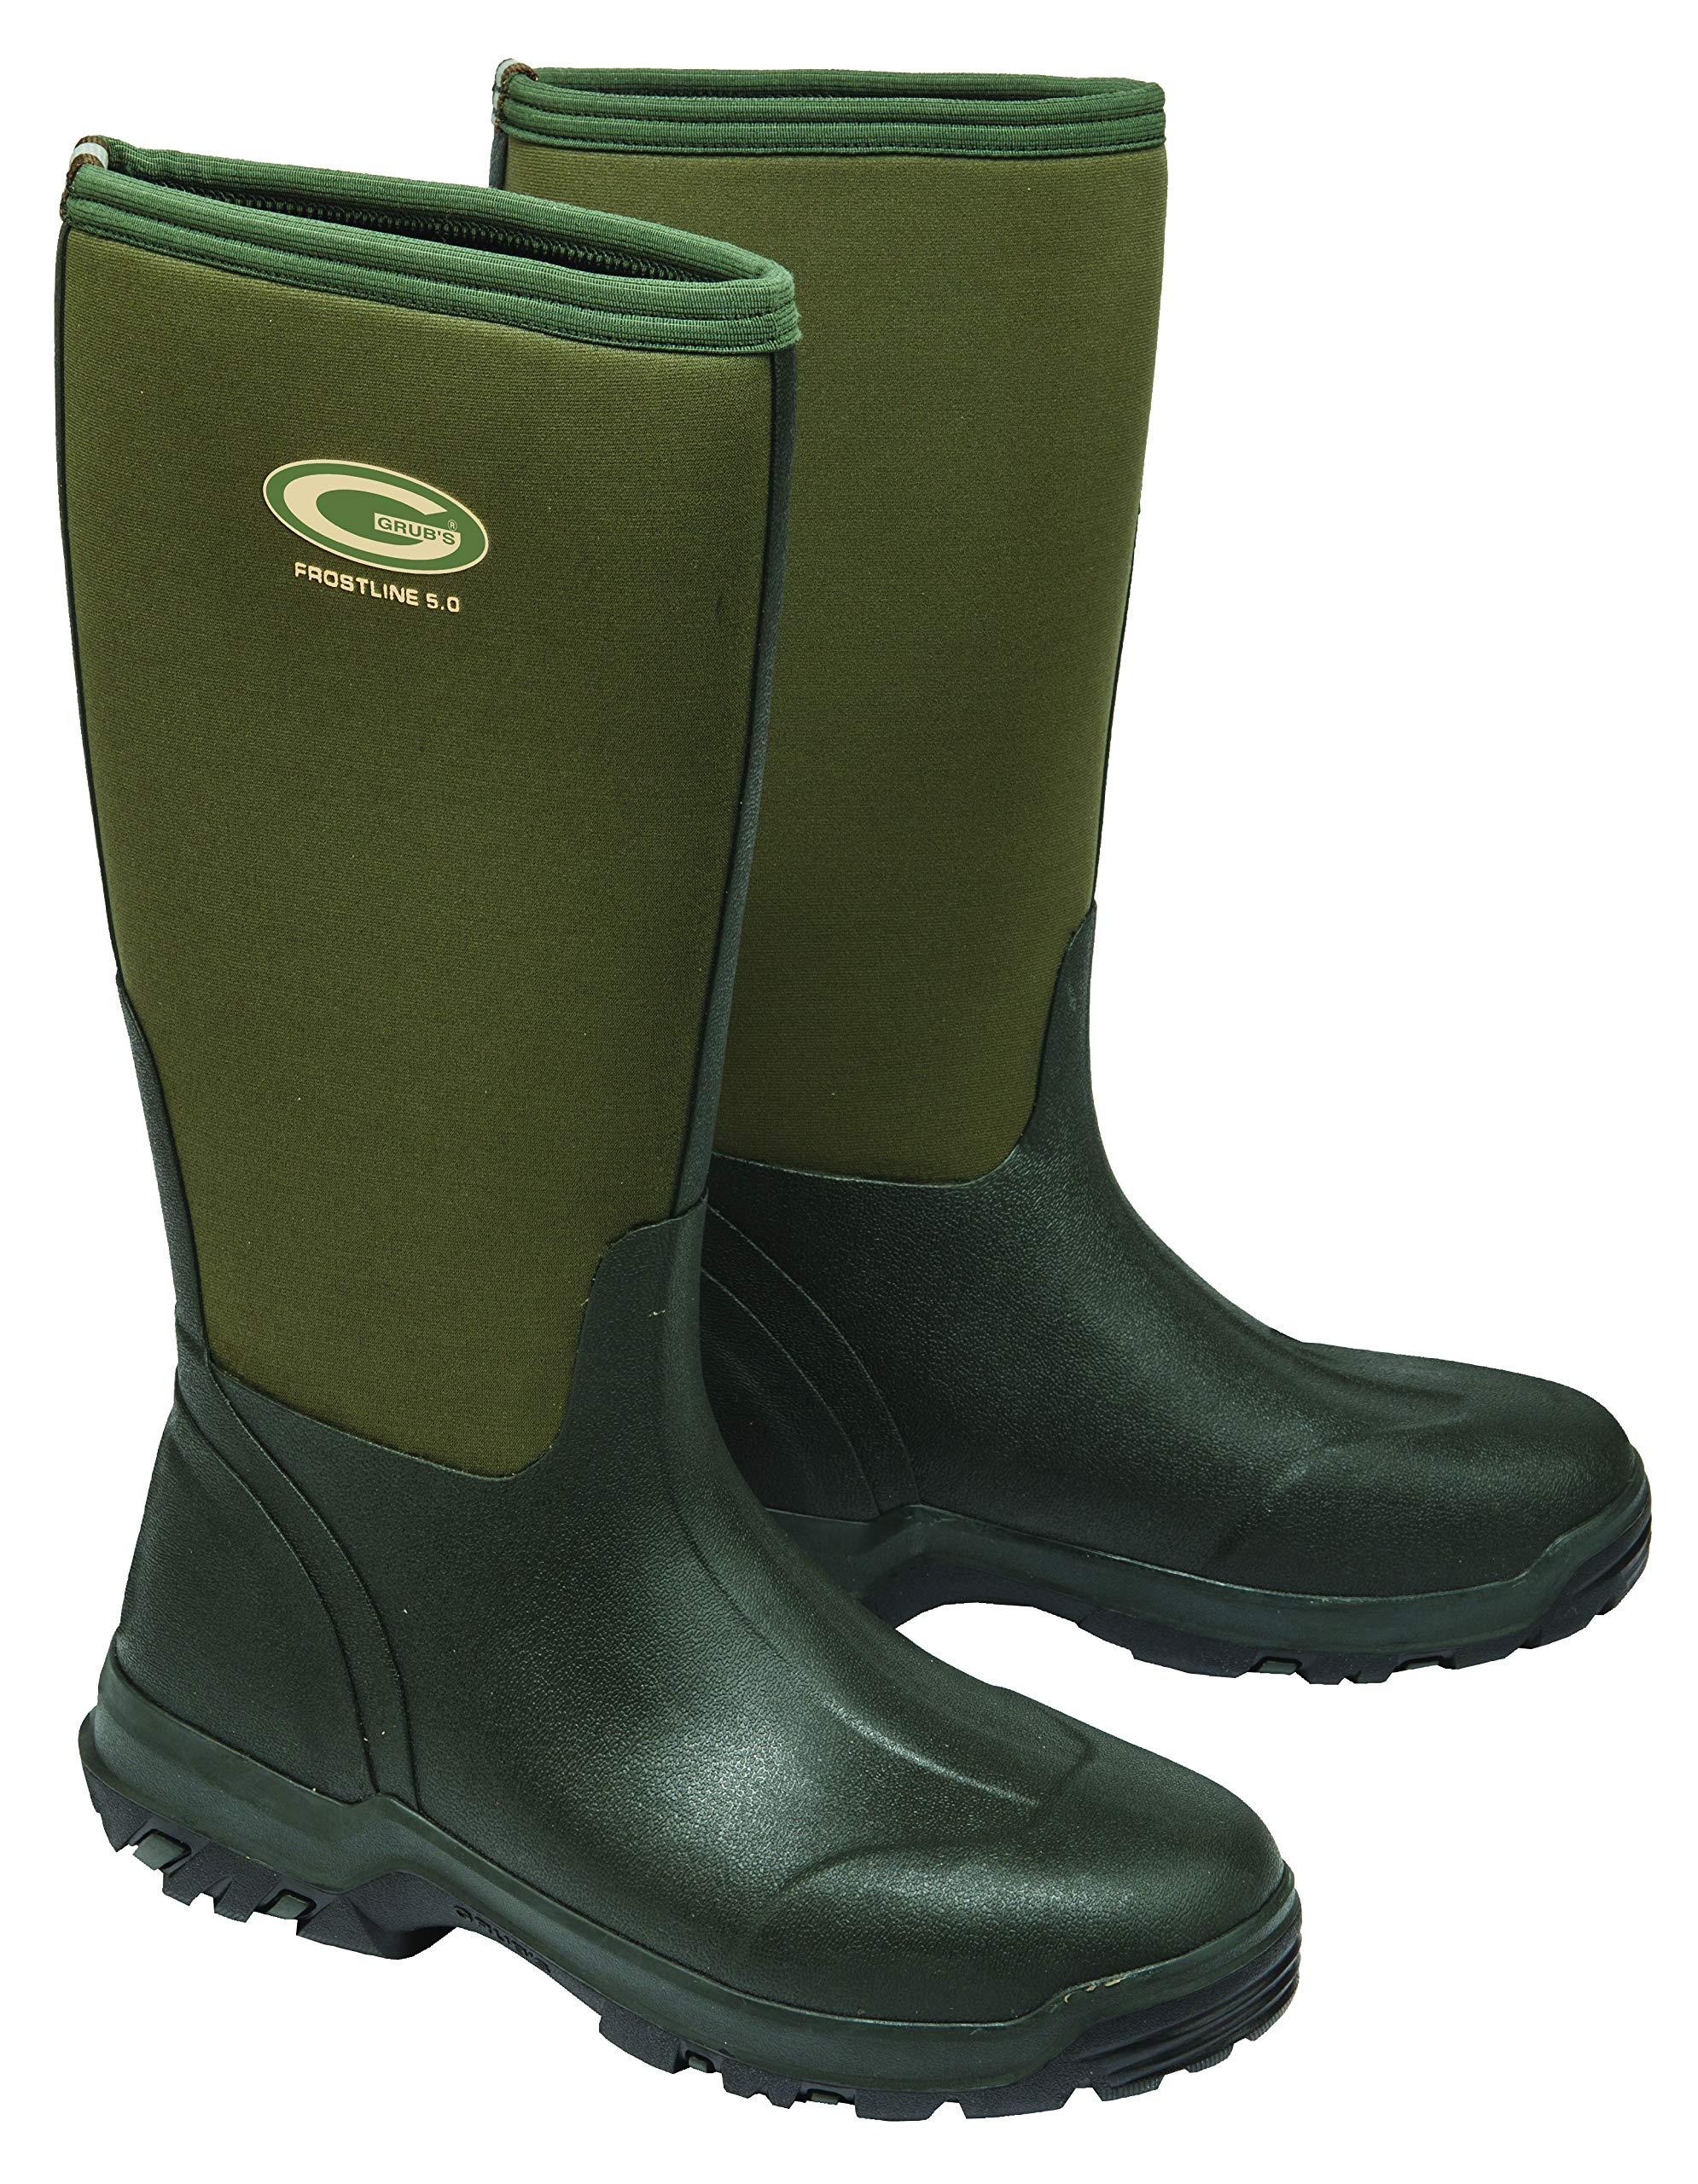 Grubs Frostline 5.0 Knee Height Performance Waterproof Boot; Insulated to 14°F (12) by Grubs